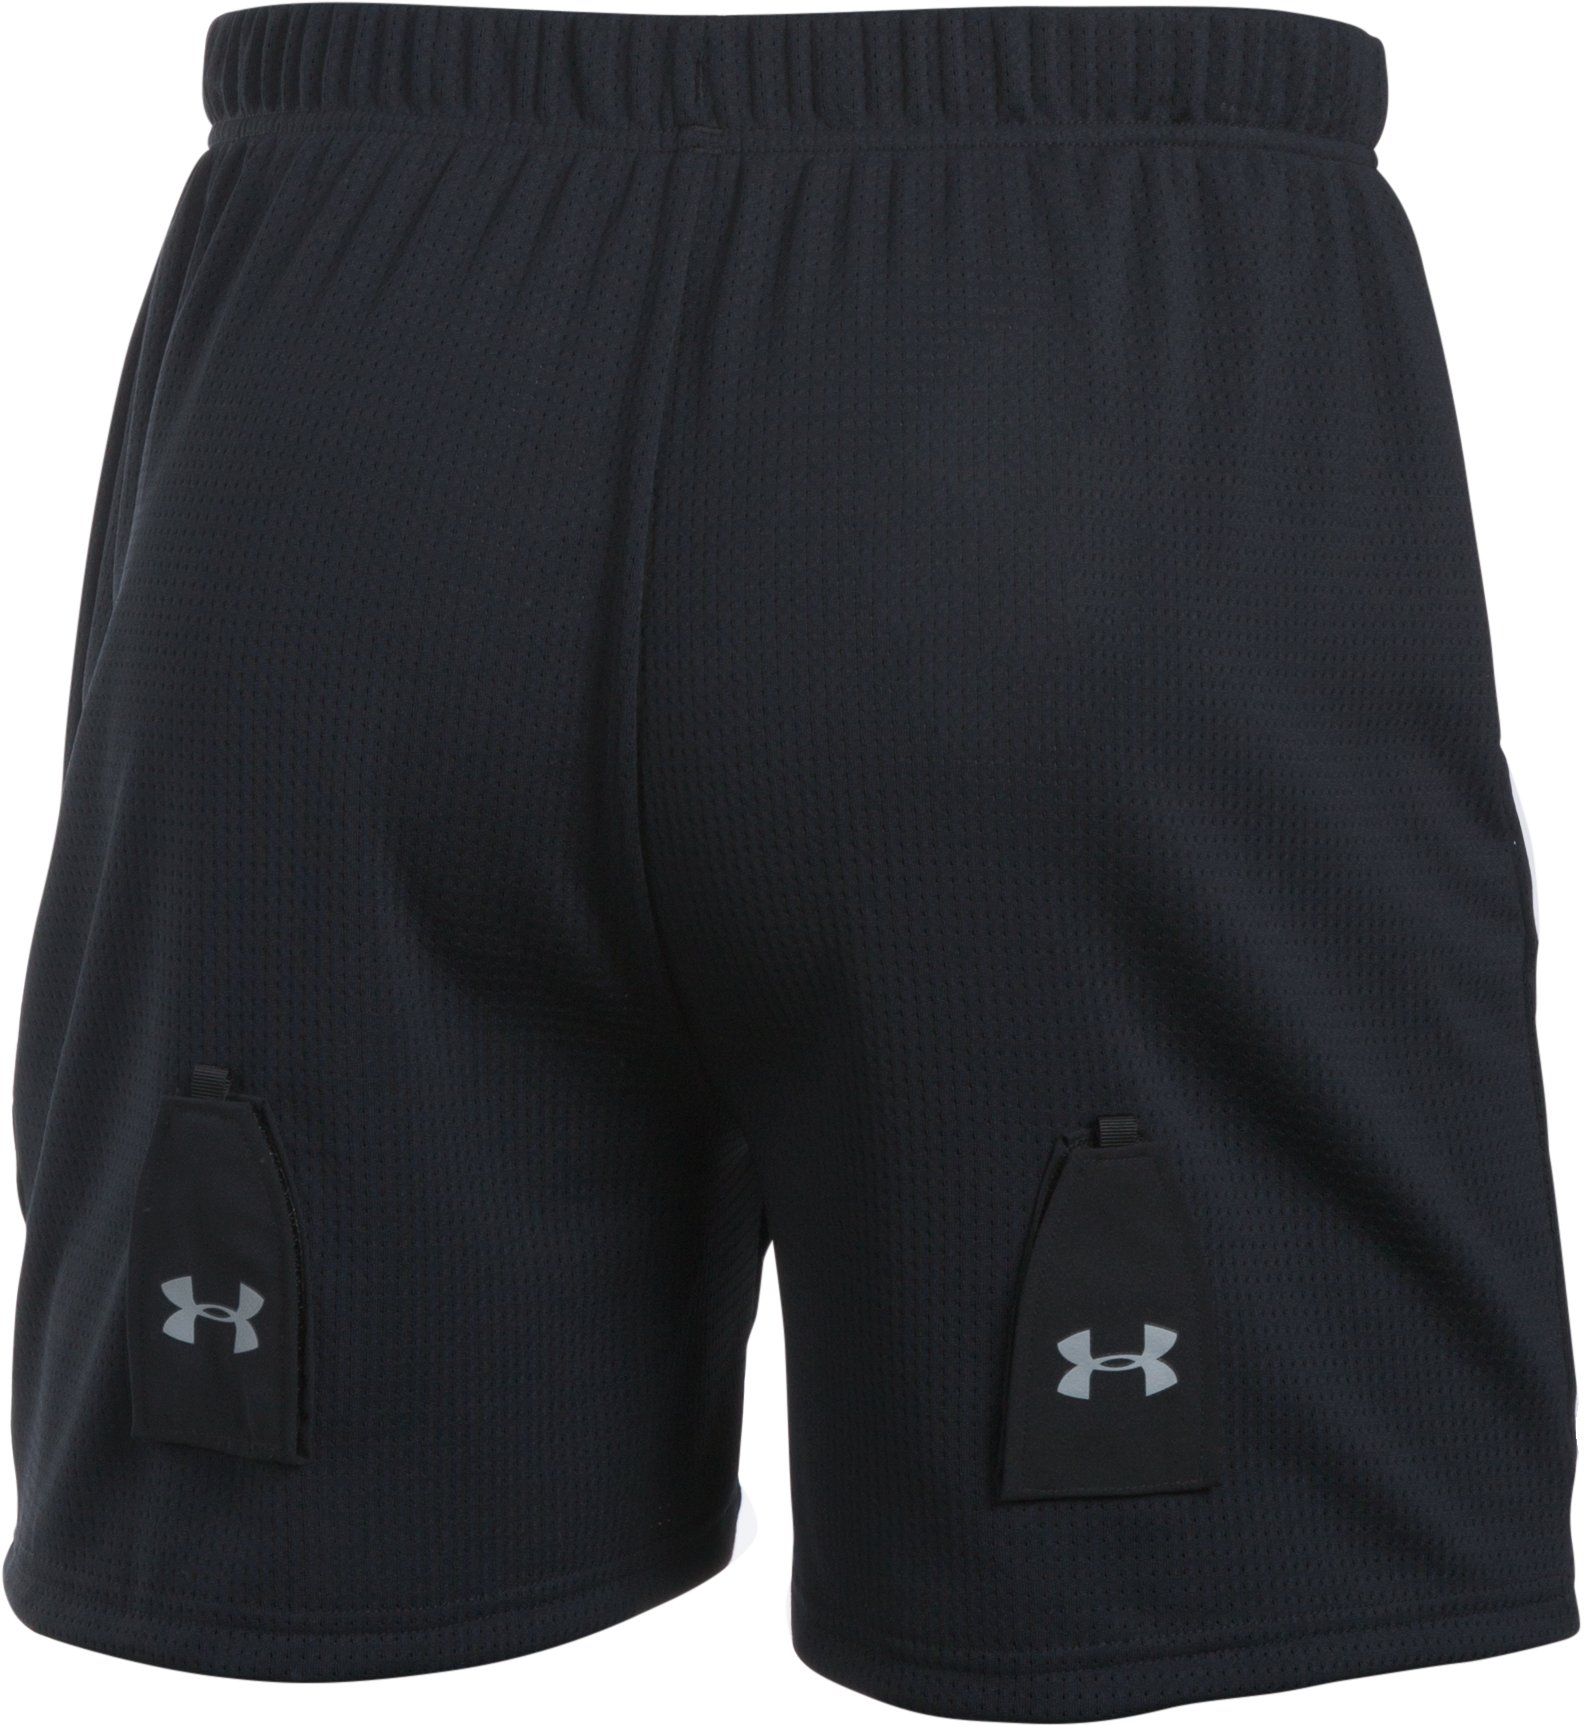 Men's UA Hockey Mesh Shorts w/ Cup, Black ,